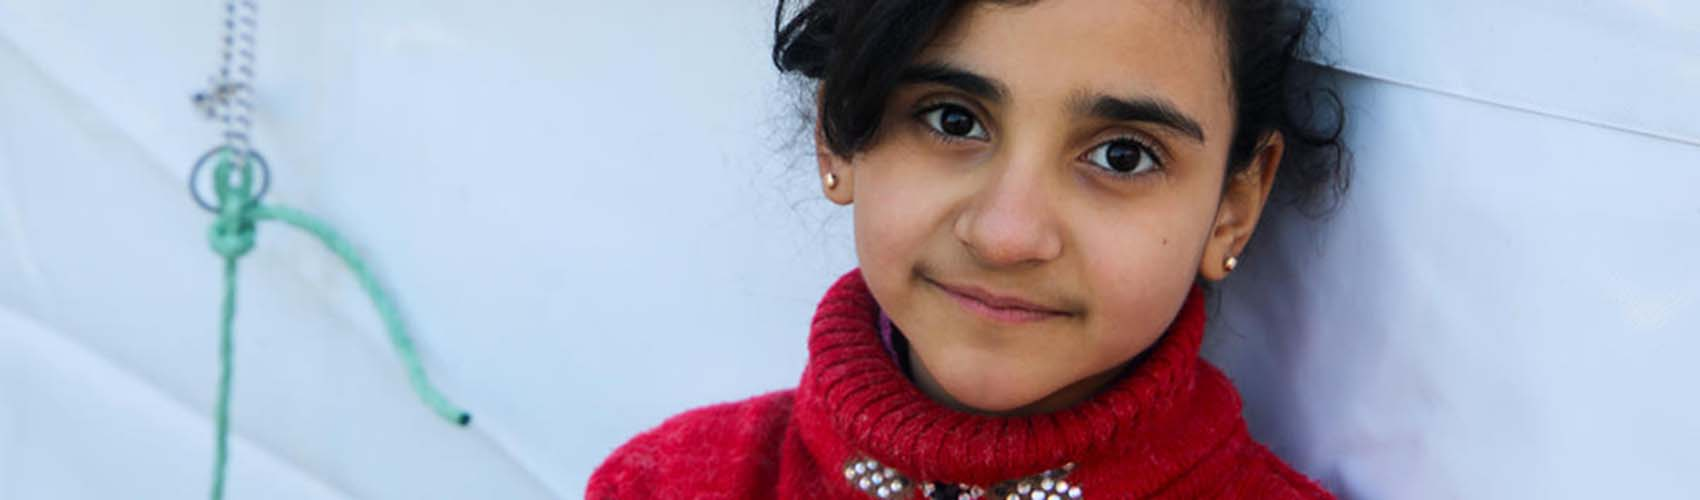 A young girl wearing a red sweater leans against a wall in Syria.